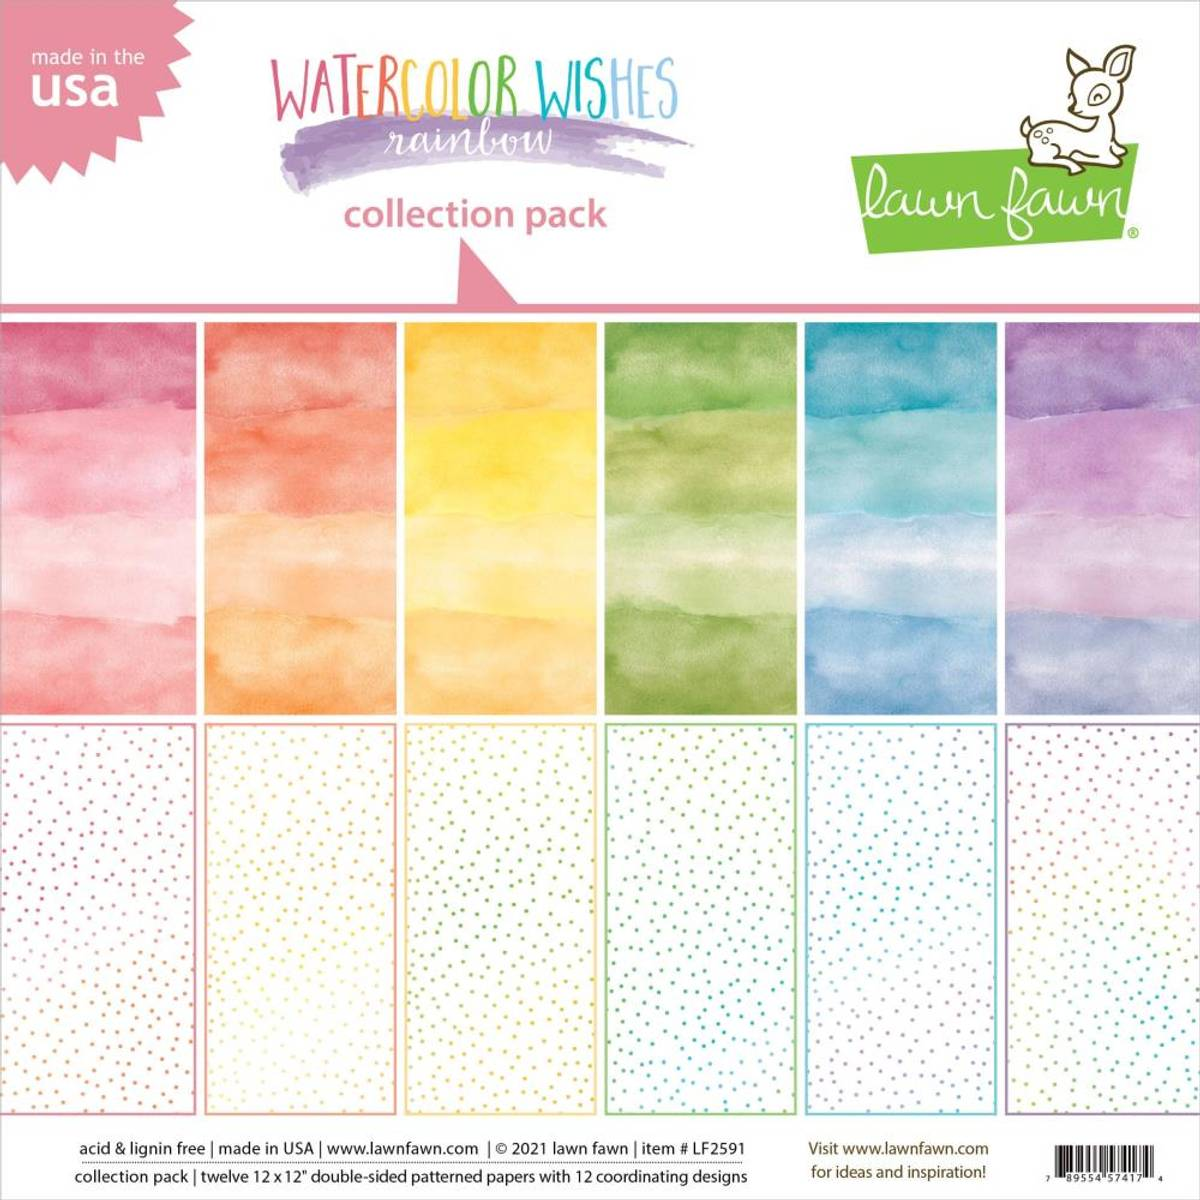 Lawn Fawn Watercolor Wishes Rainbow, 6 Designs